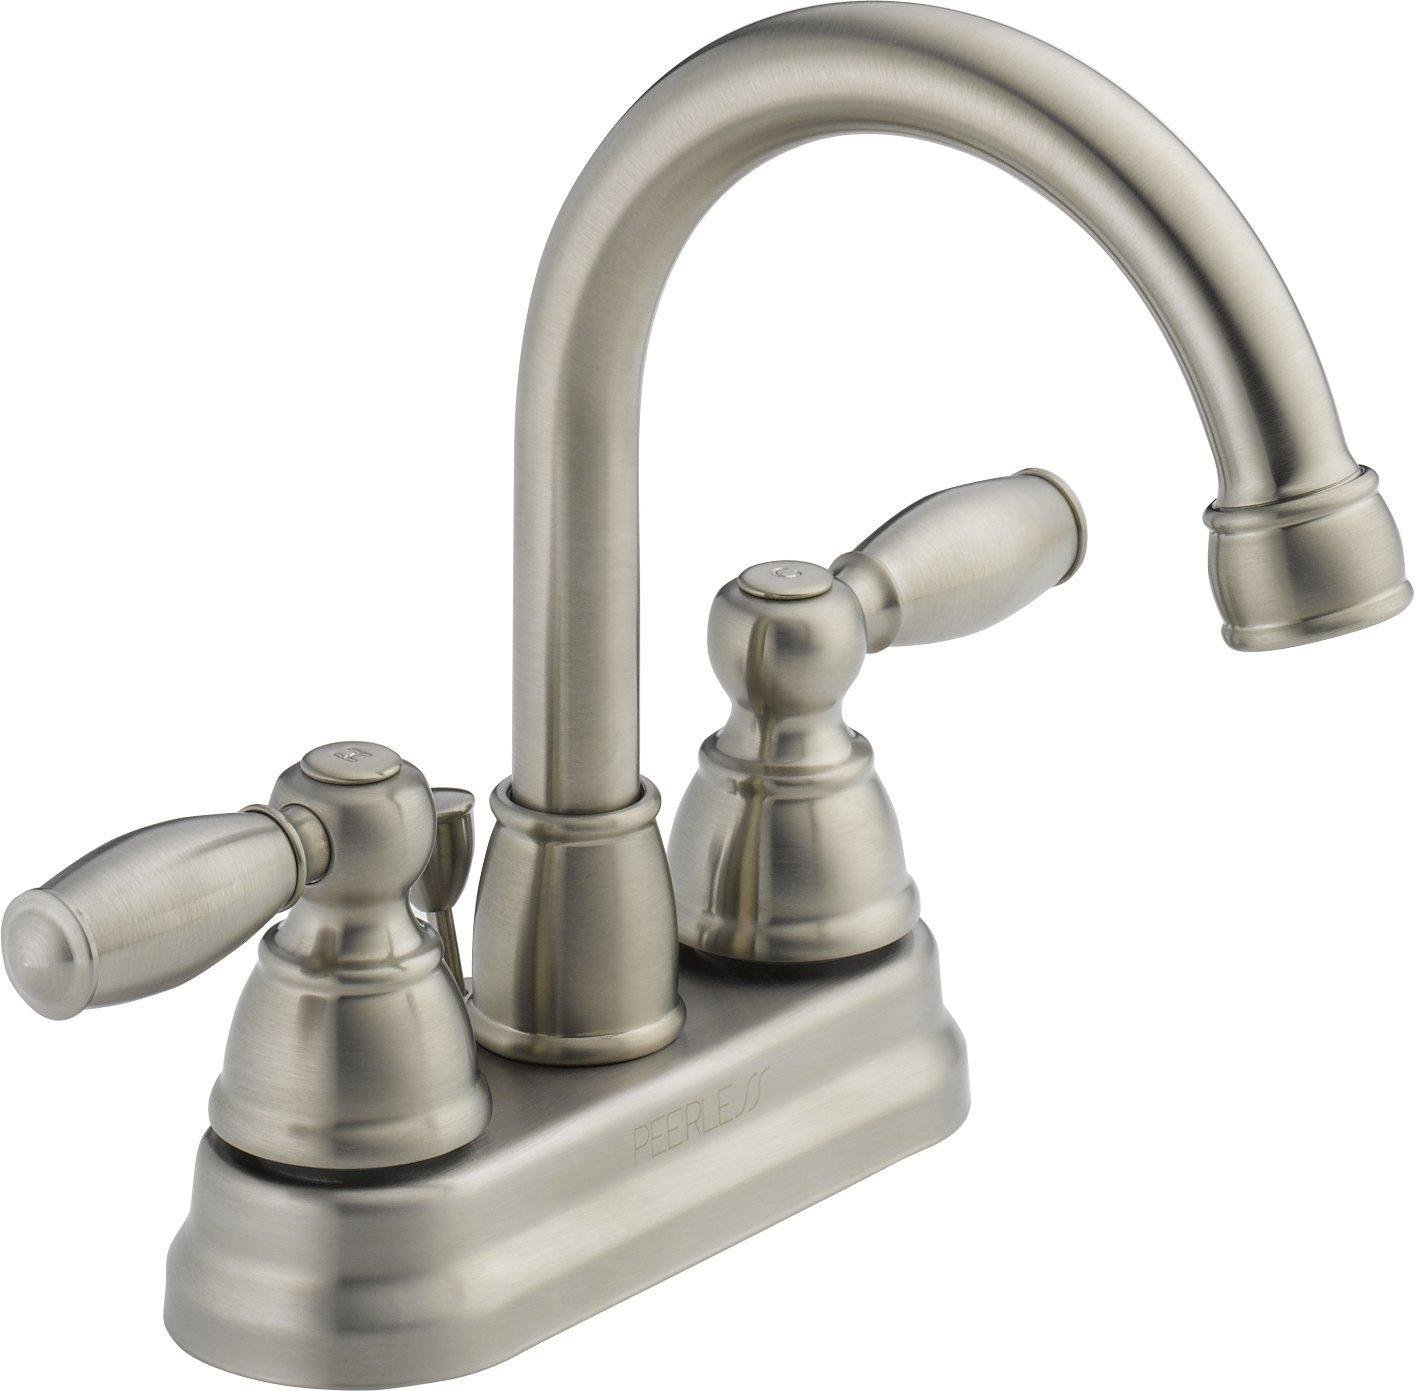 Peerless P299685LF-BN-W Two Handle Lavatory Faucet, Brushed Nickel ...